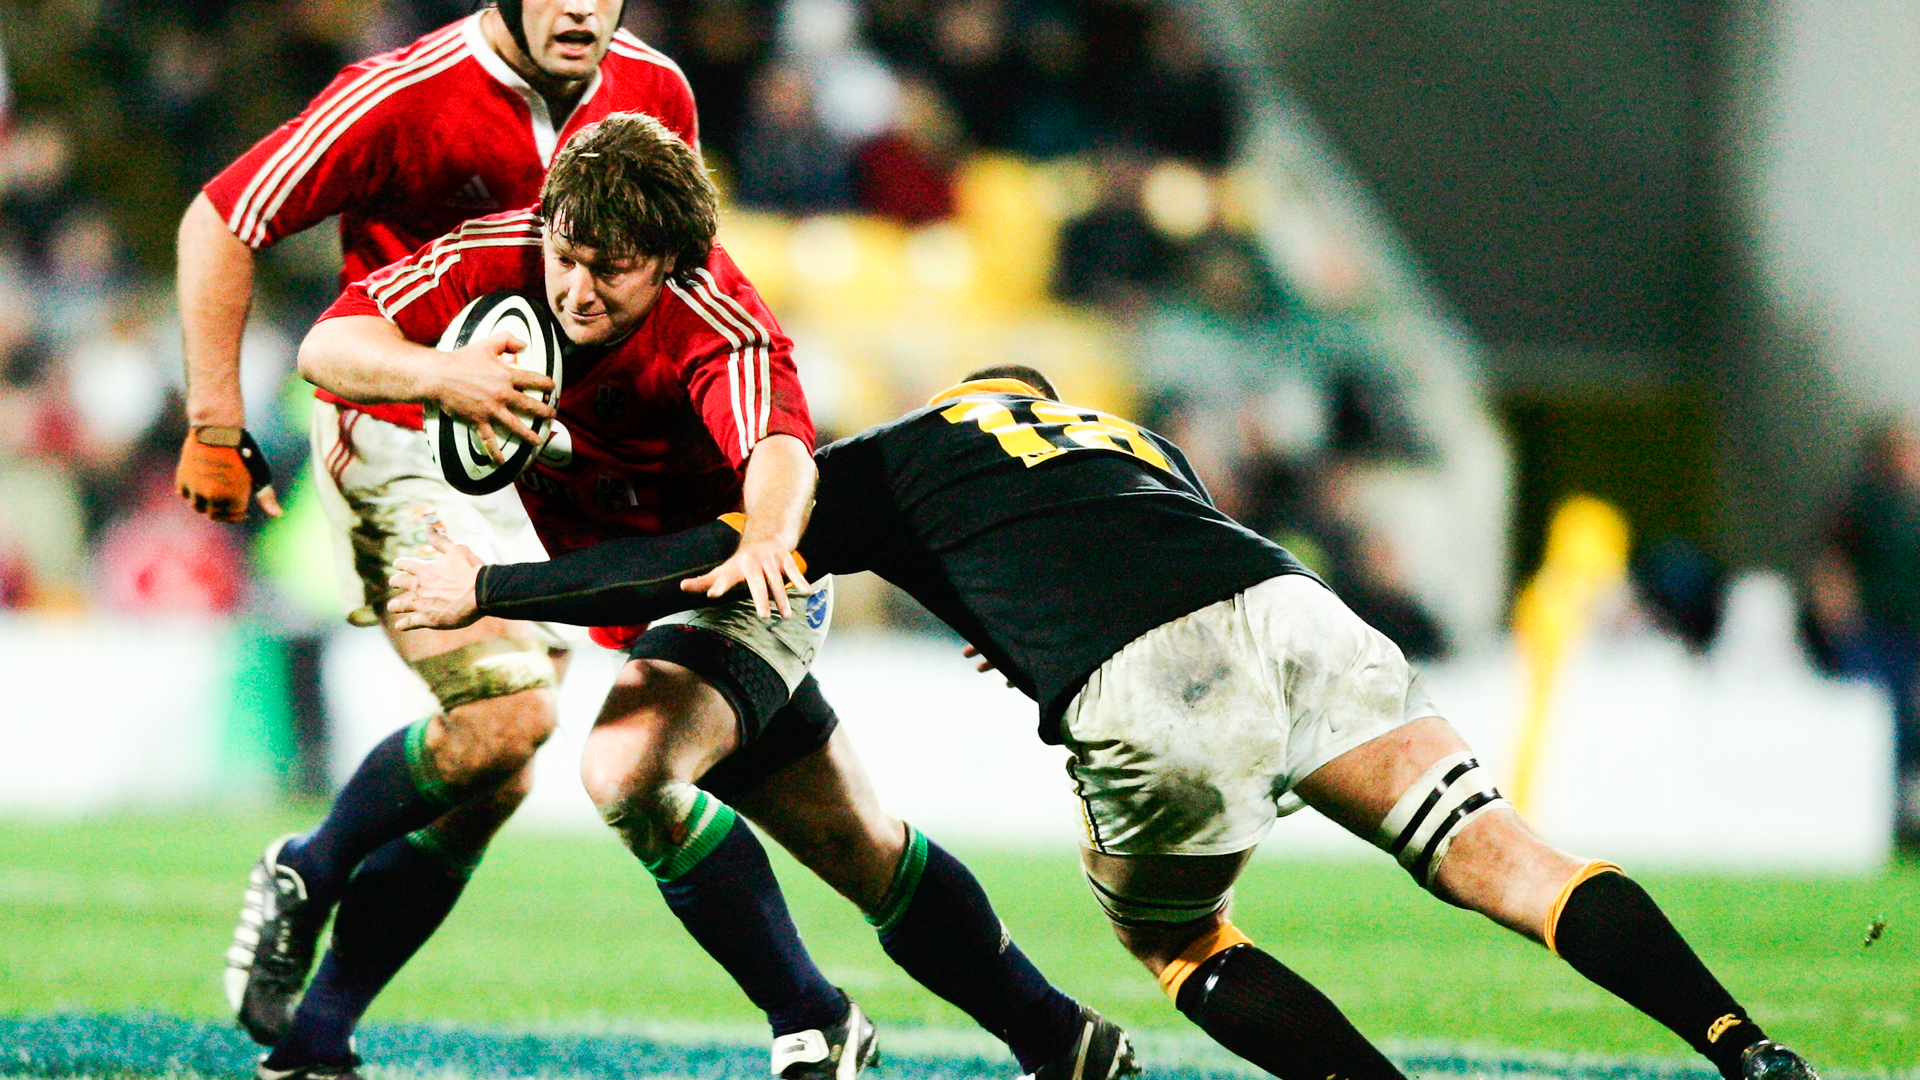 Shane Byrne in action at the 2005 Lions Tour to New Zealand.